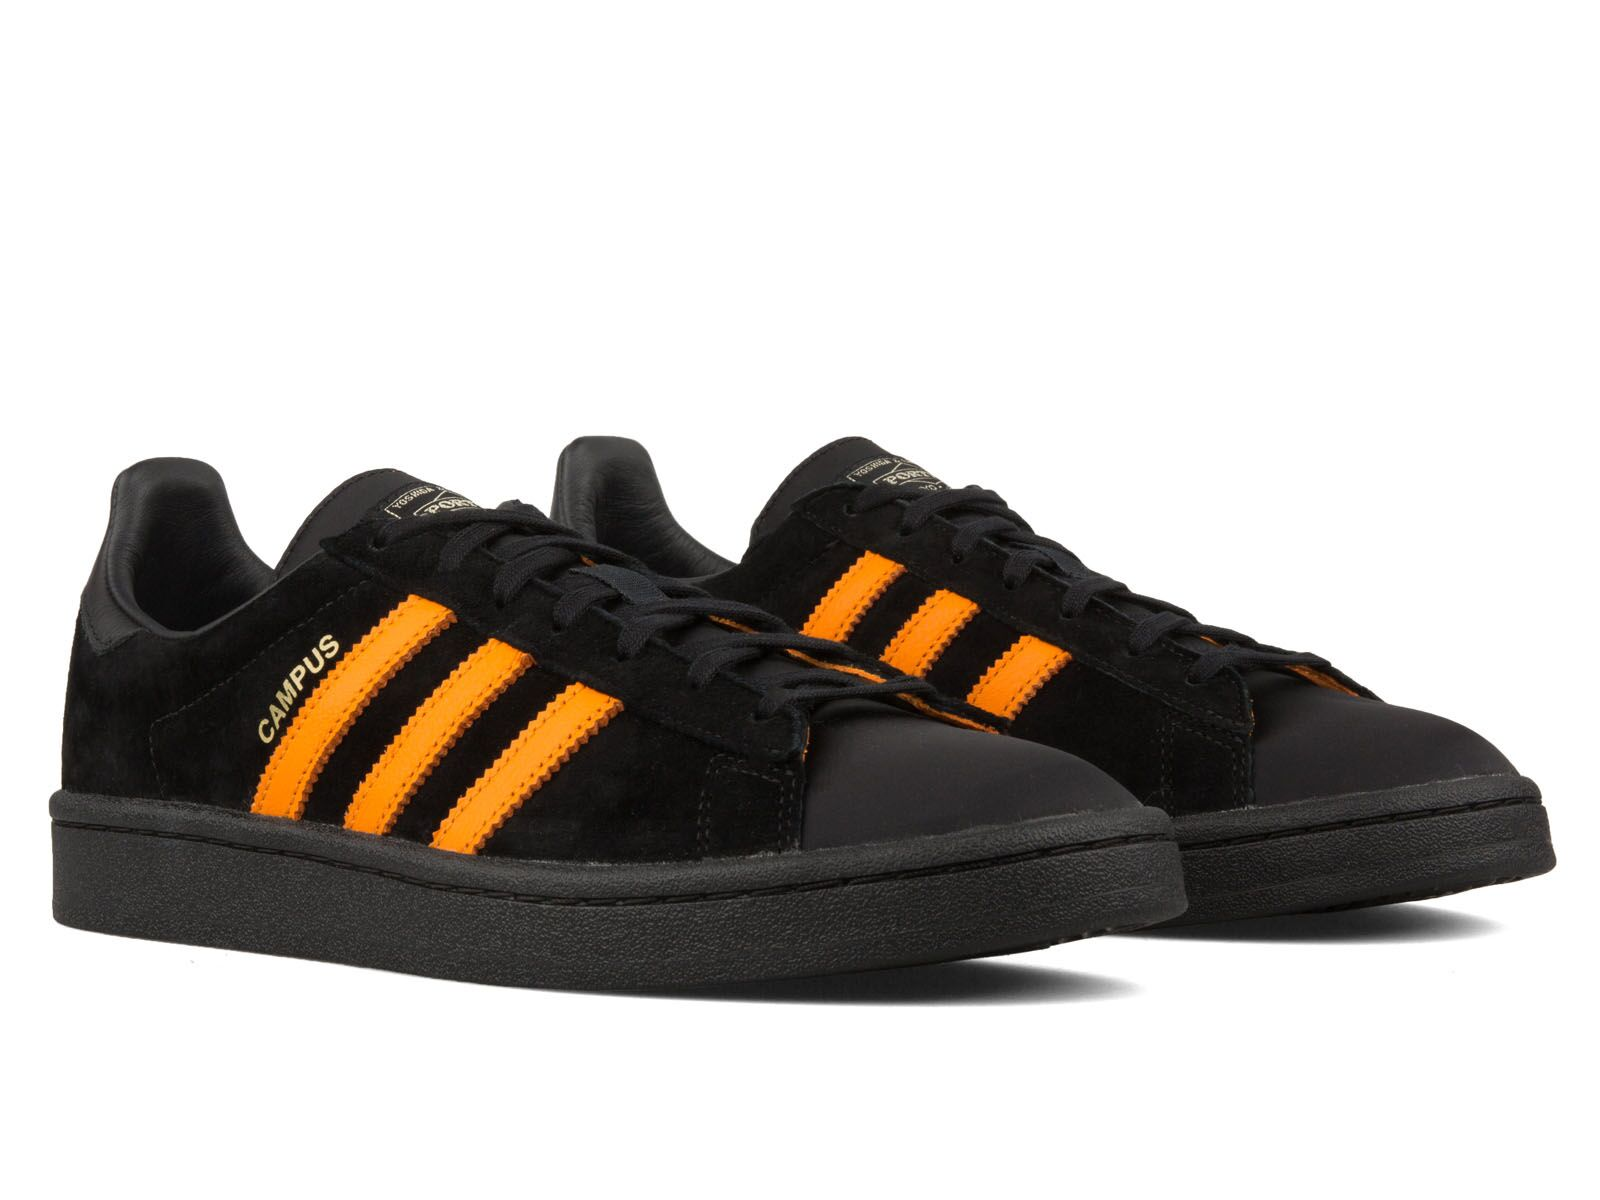 e0b766ad3456 ... and a gold-stamped Porter hit by the stripes replaces the normal adidas  mark. The shoe s clean look is tied together by a Porter tongue patch and  ...